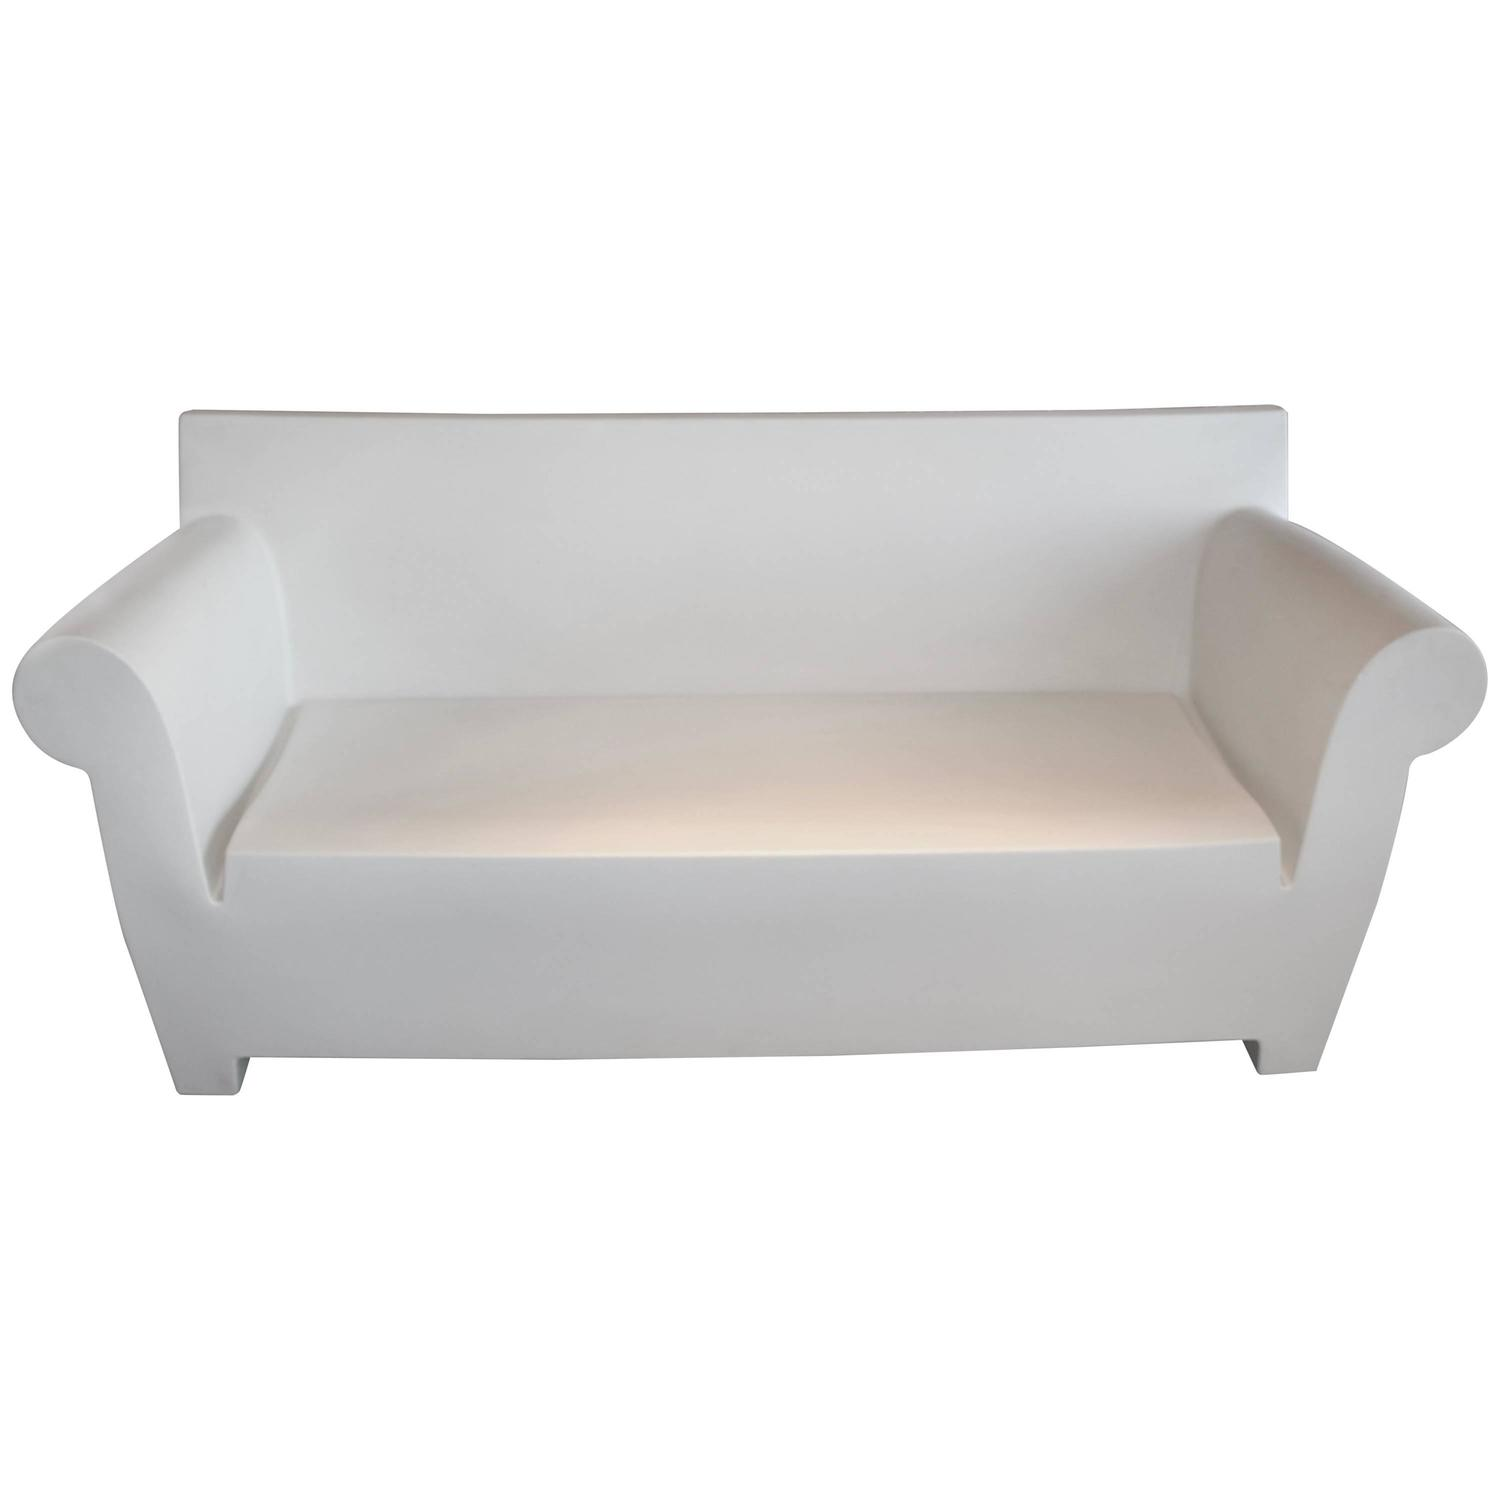 Bubble Sofa By Phillippe Starck For Kartell At 1stdibs